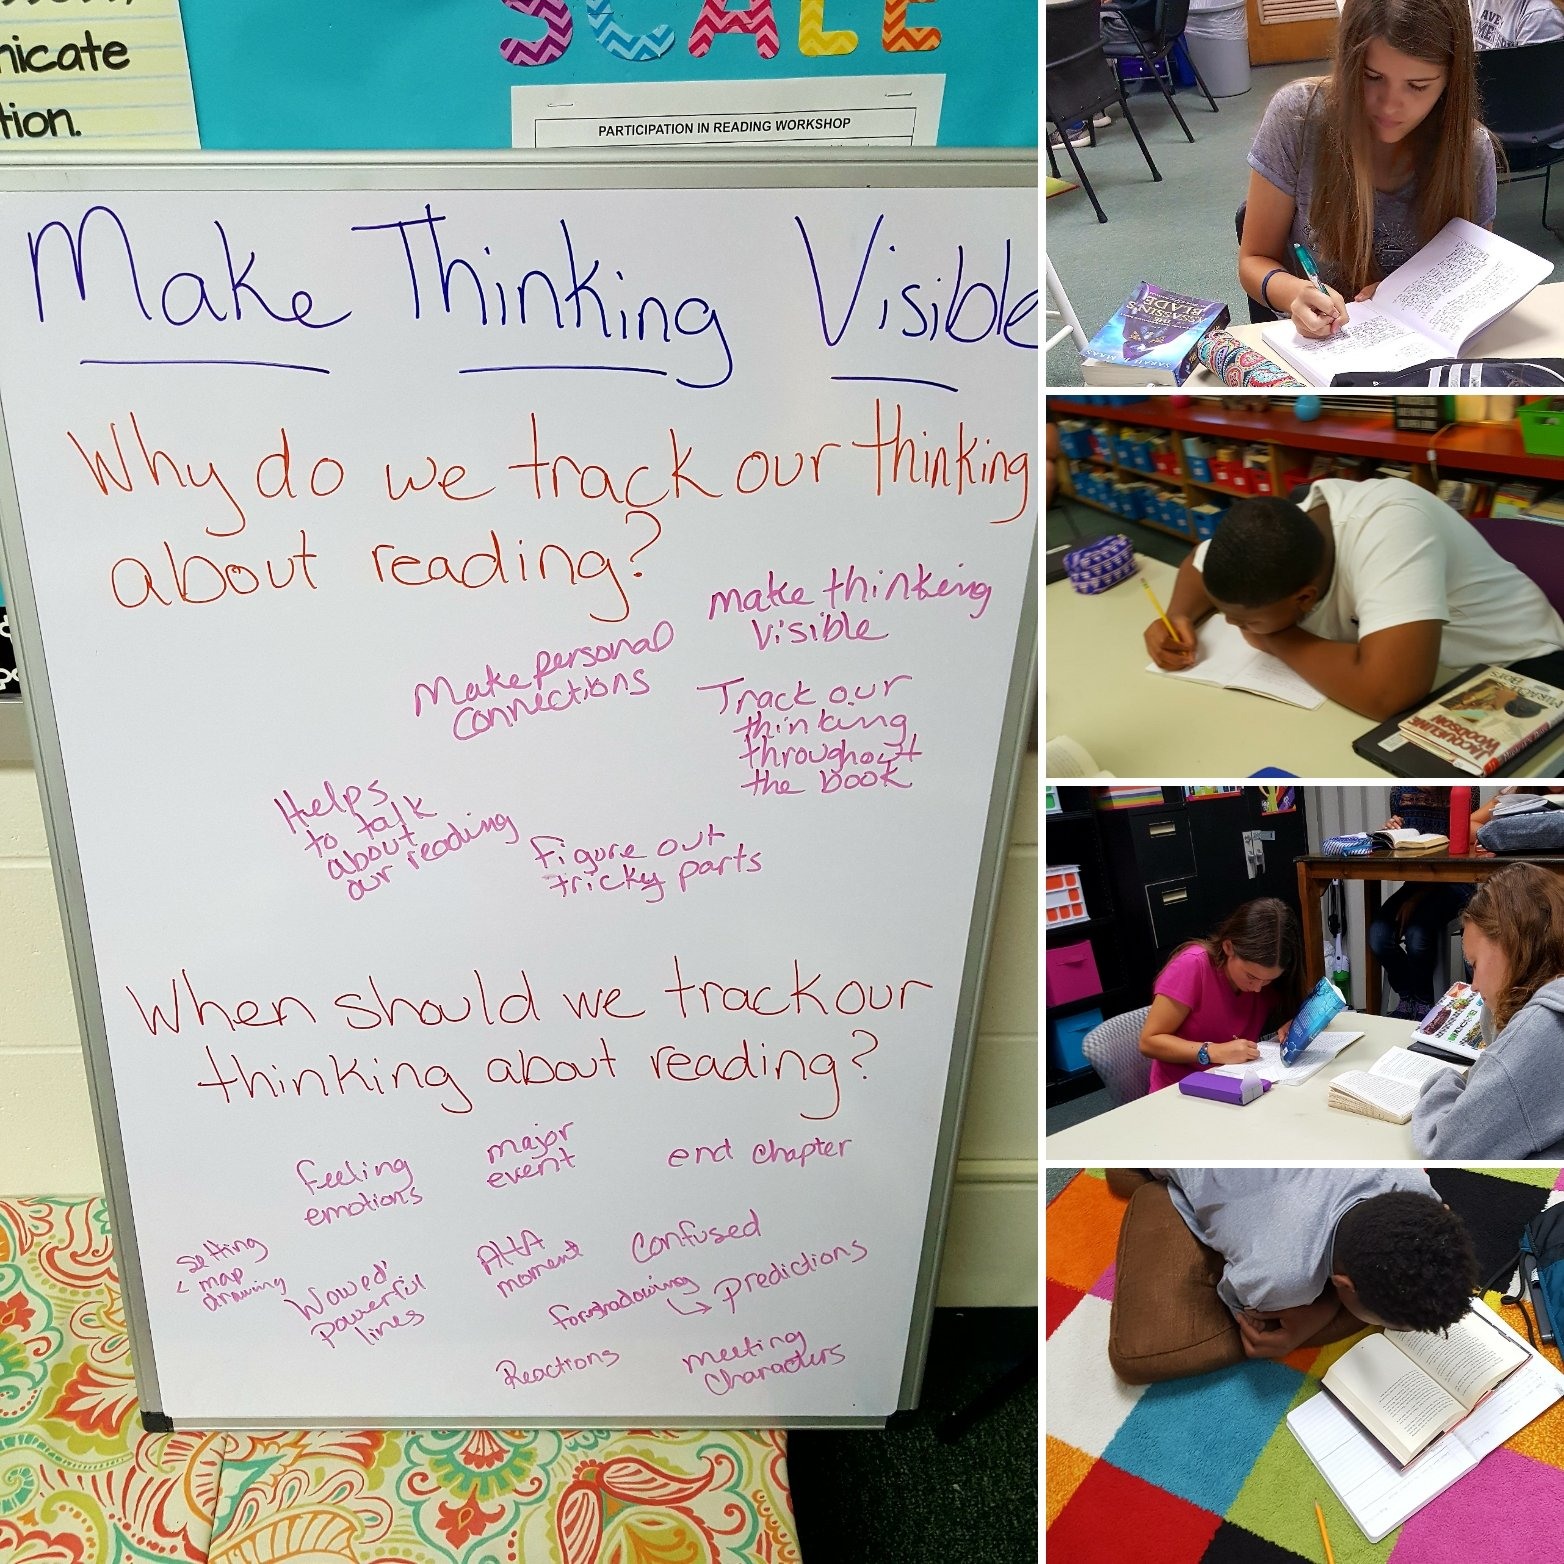 Making our thinking visible #hxms #wgbuzz https://t.co/ERSUQxnLIA